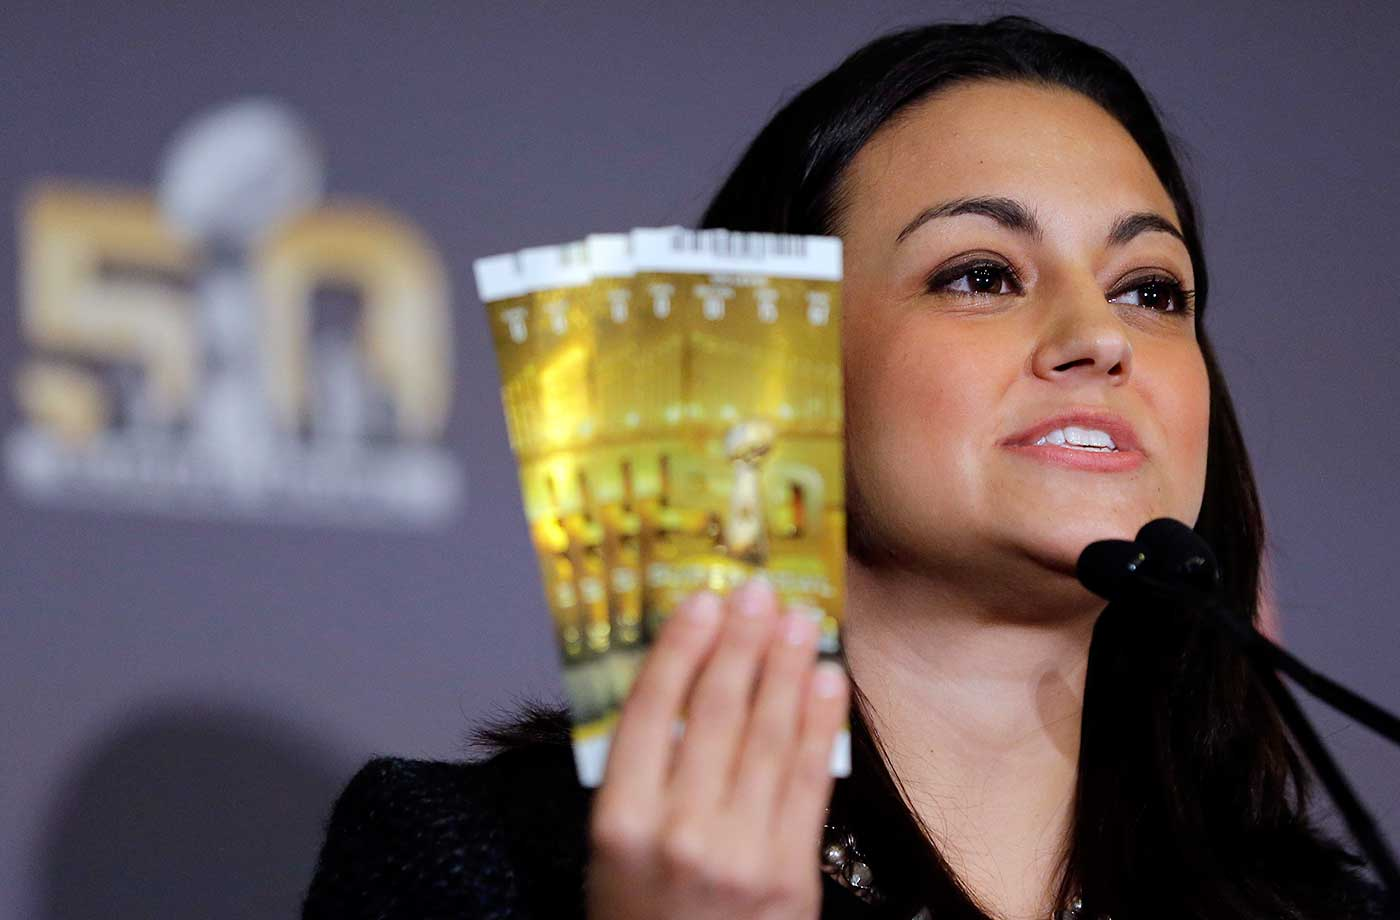 Dolores F. Dibella, NFL Counsel, holds up authentic Super Bowl 50 tickets during a counterfeit merchandise news conference Thursday in San Francisco.